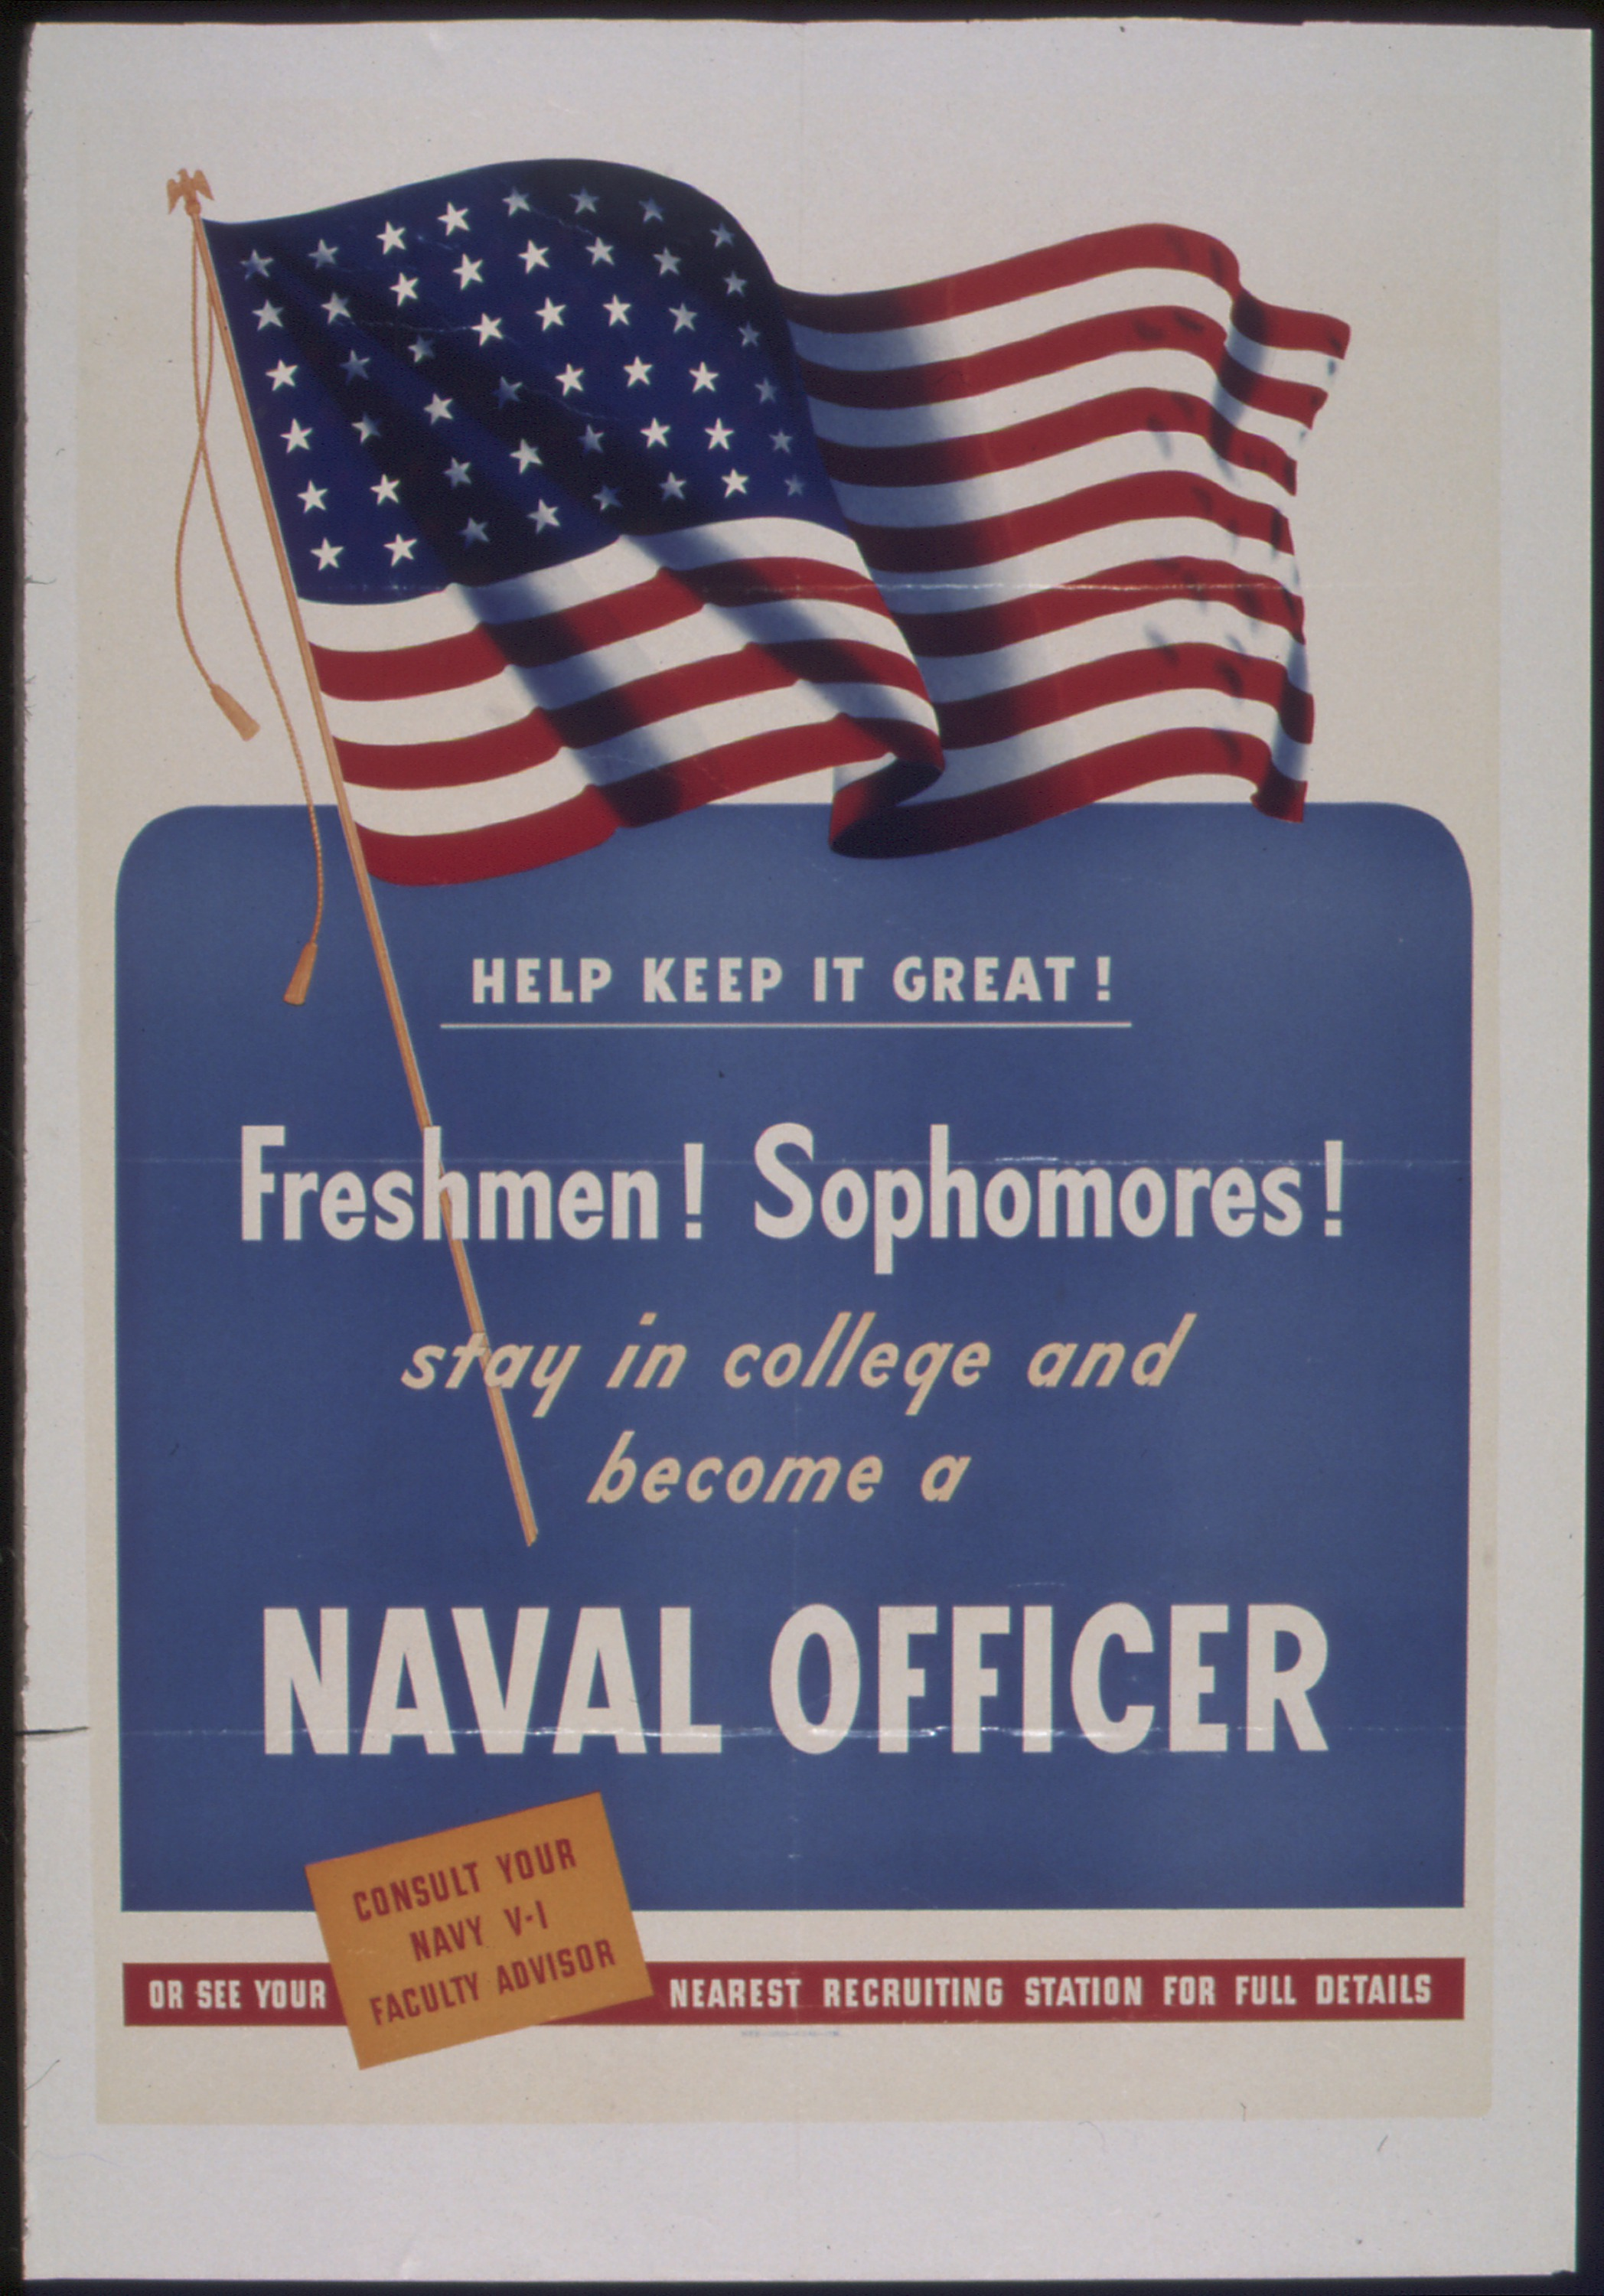 discuss your reasons for wanting to become a naval officer